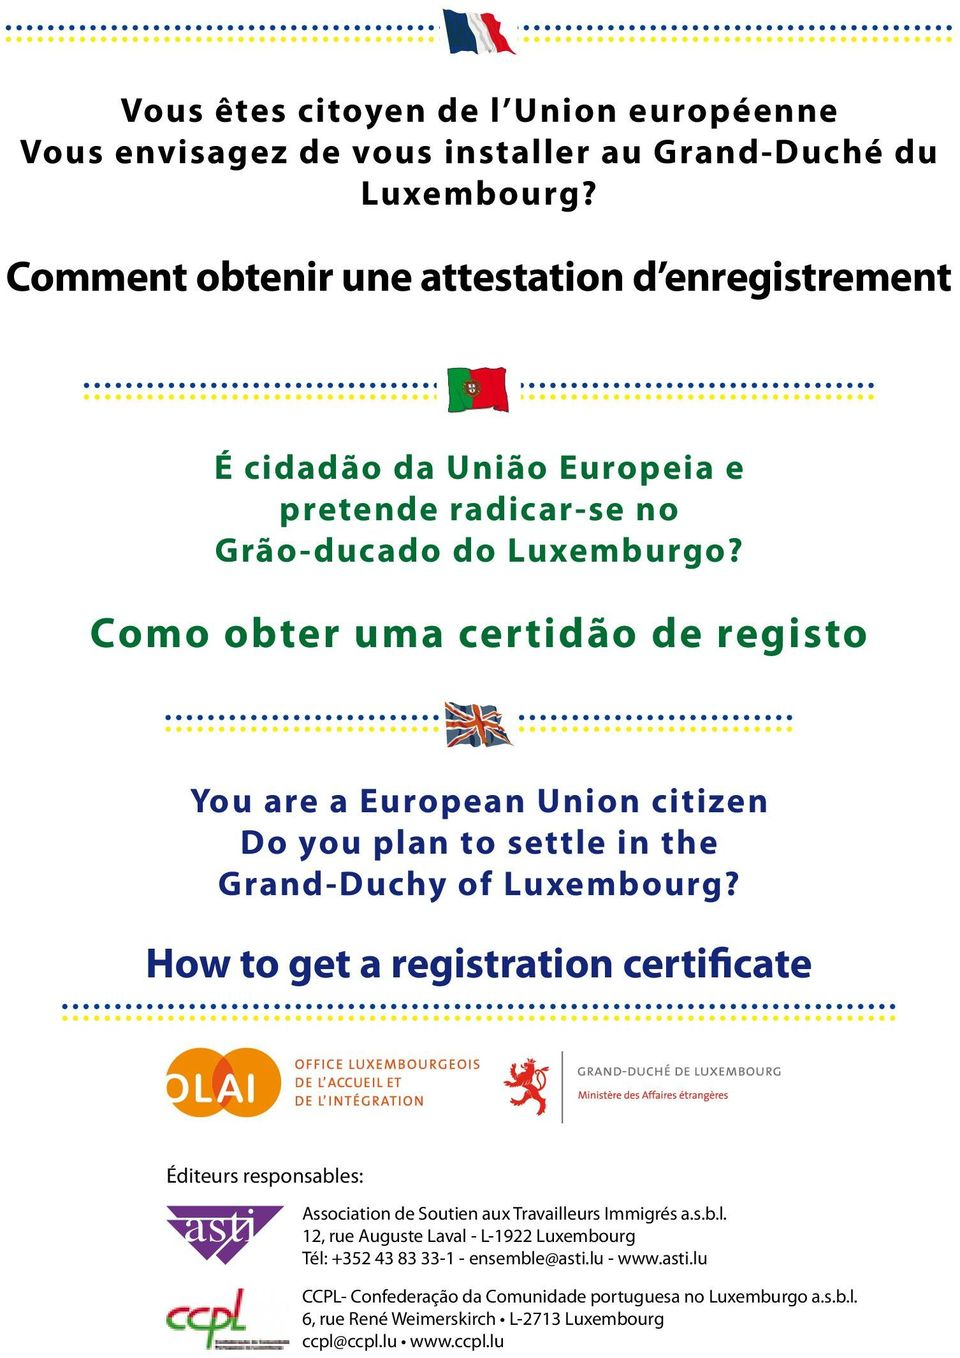 Como obter uma certidão de registo You are a European Union citizen Do you plan to settle in the Grand-Duchy of Luxembourg?